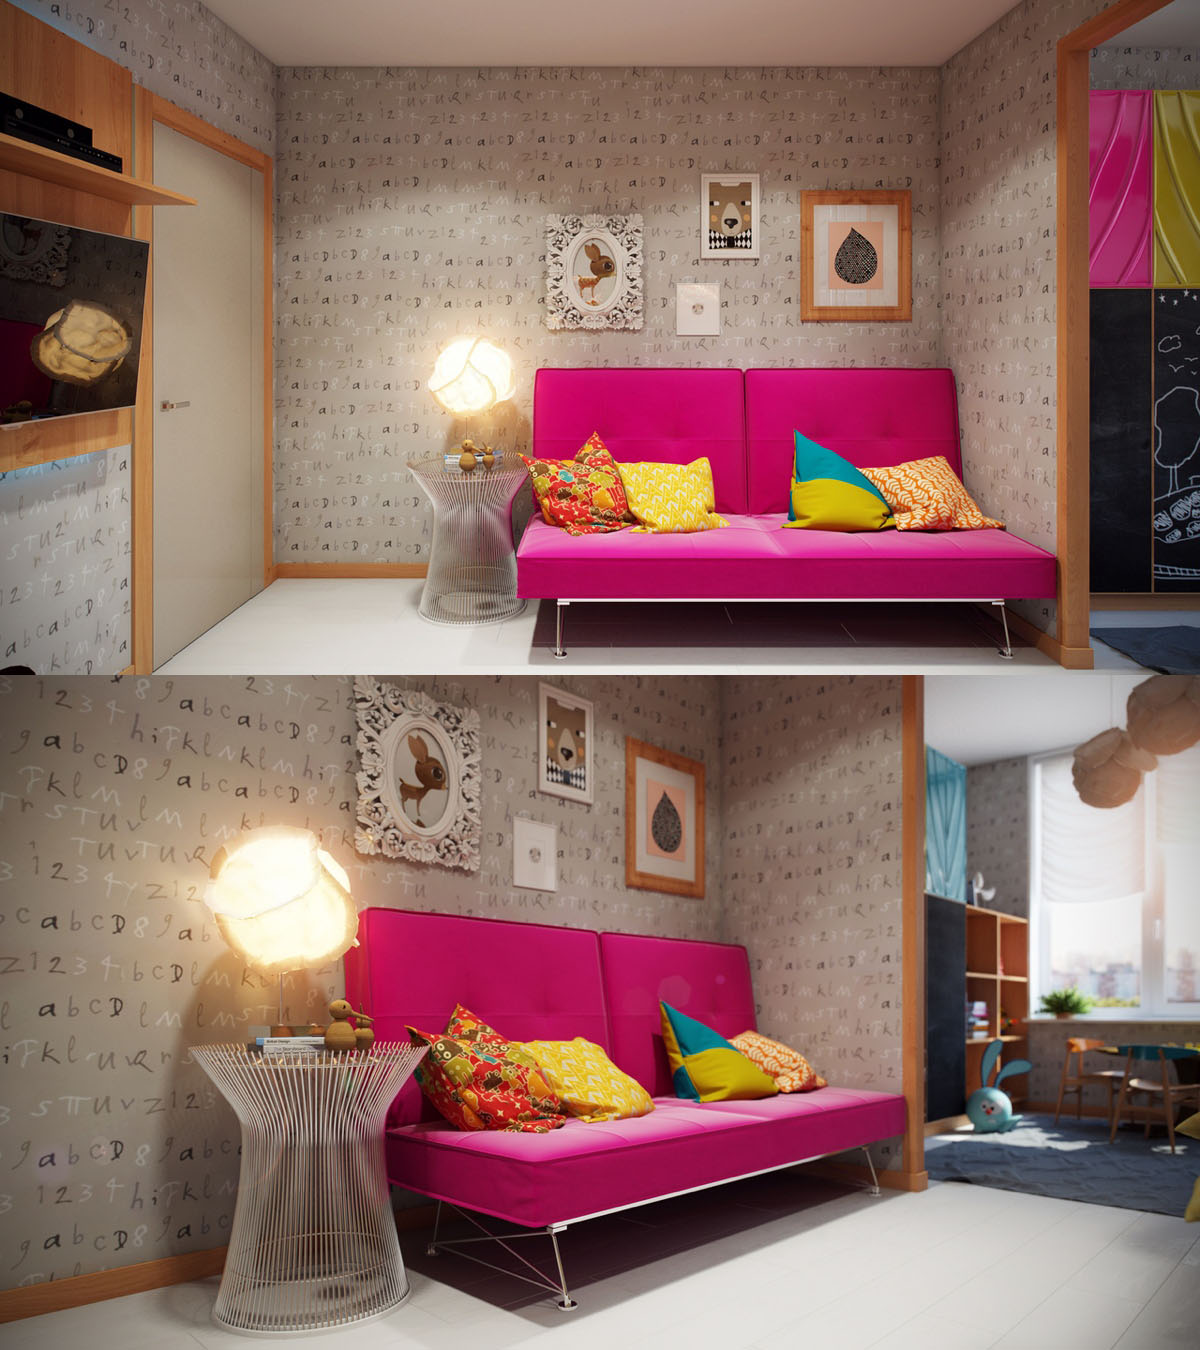 Colorful Kids Rooms: Bright And Colorful Kids Room Designs With Whimsical